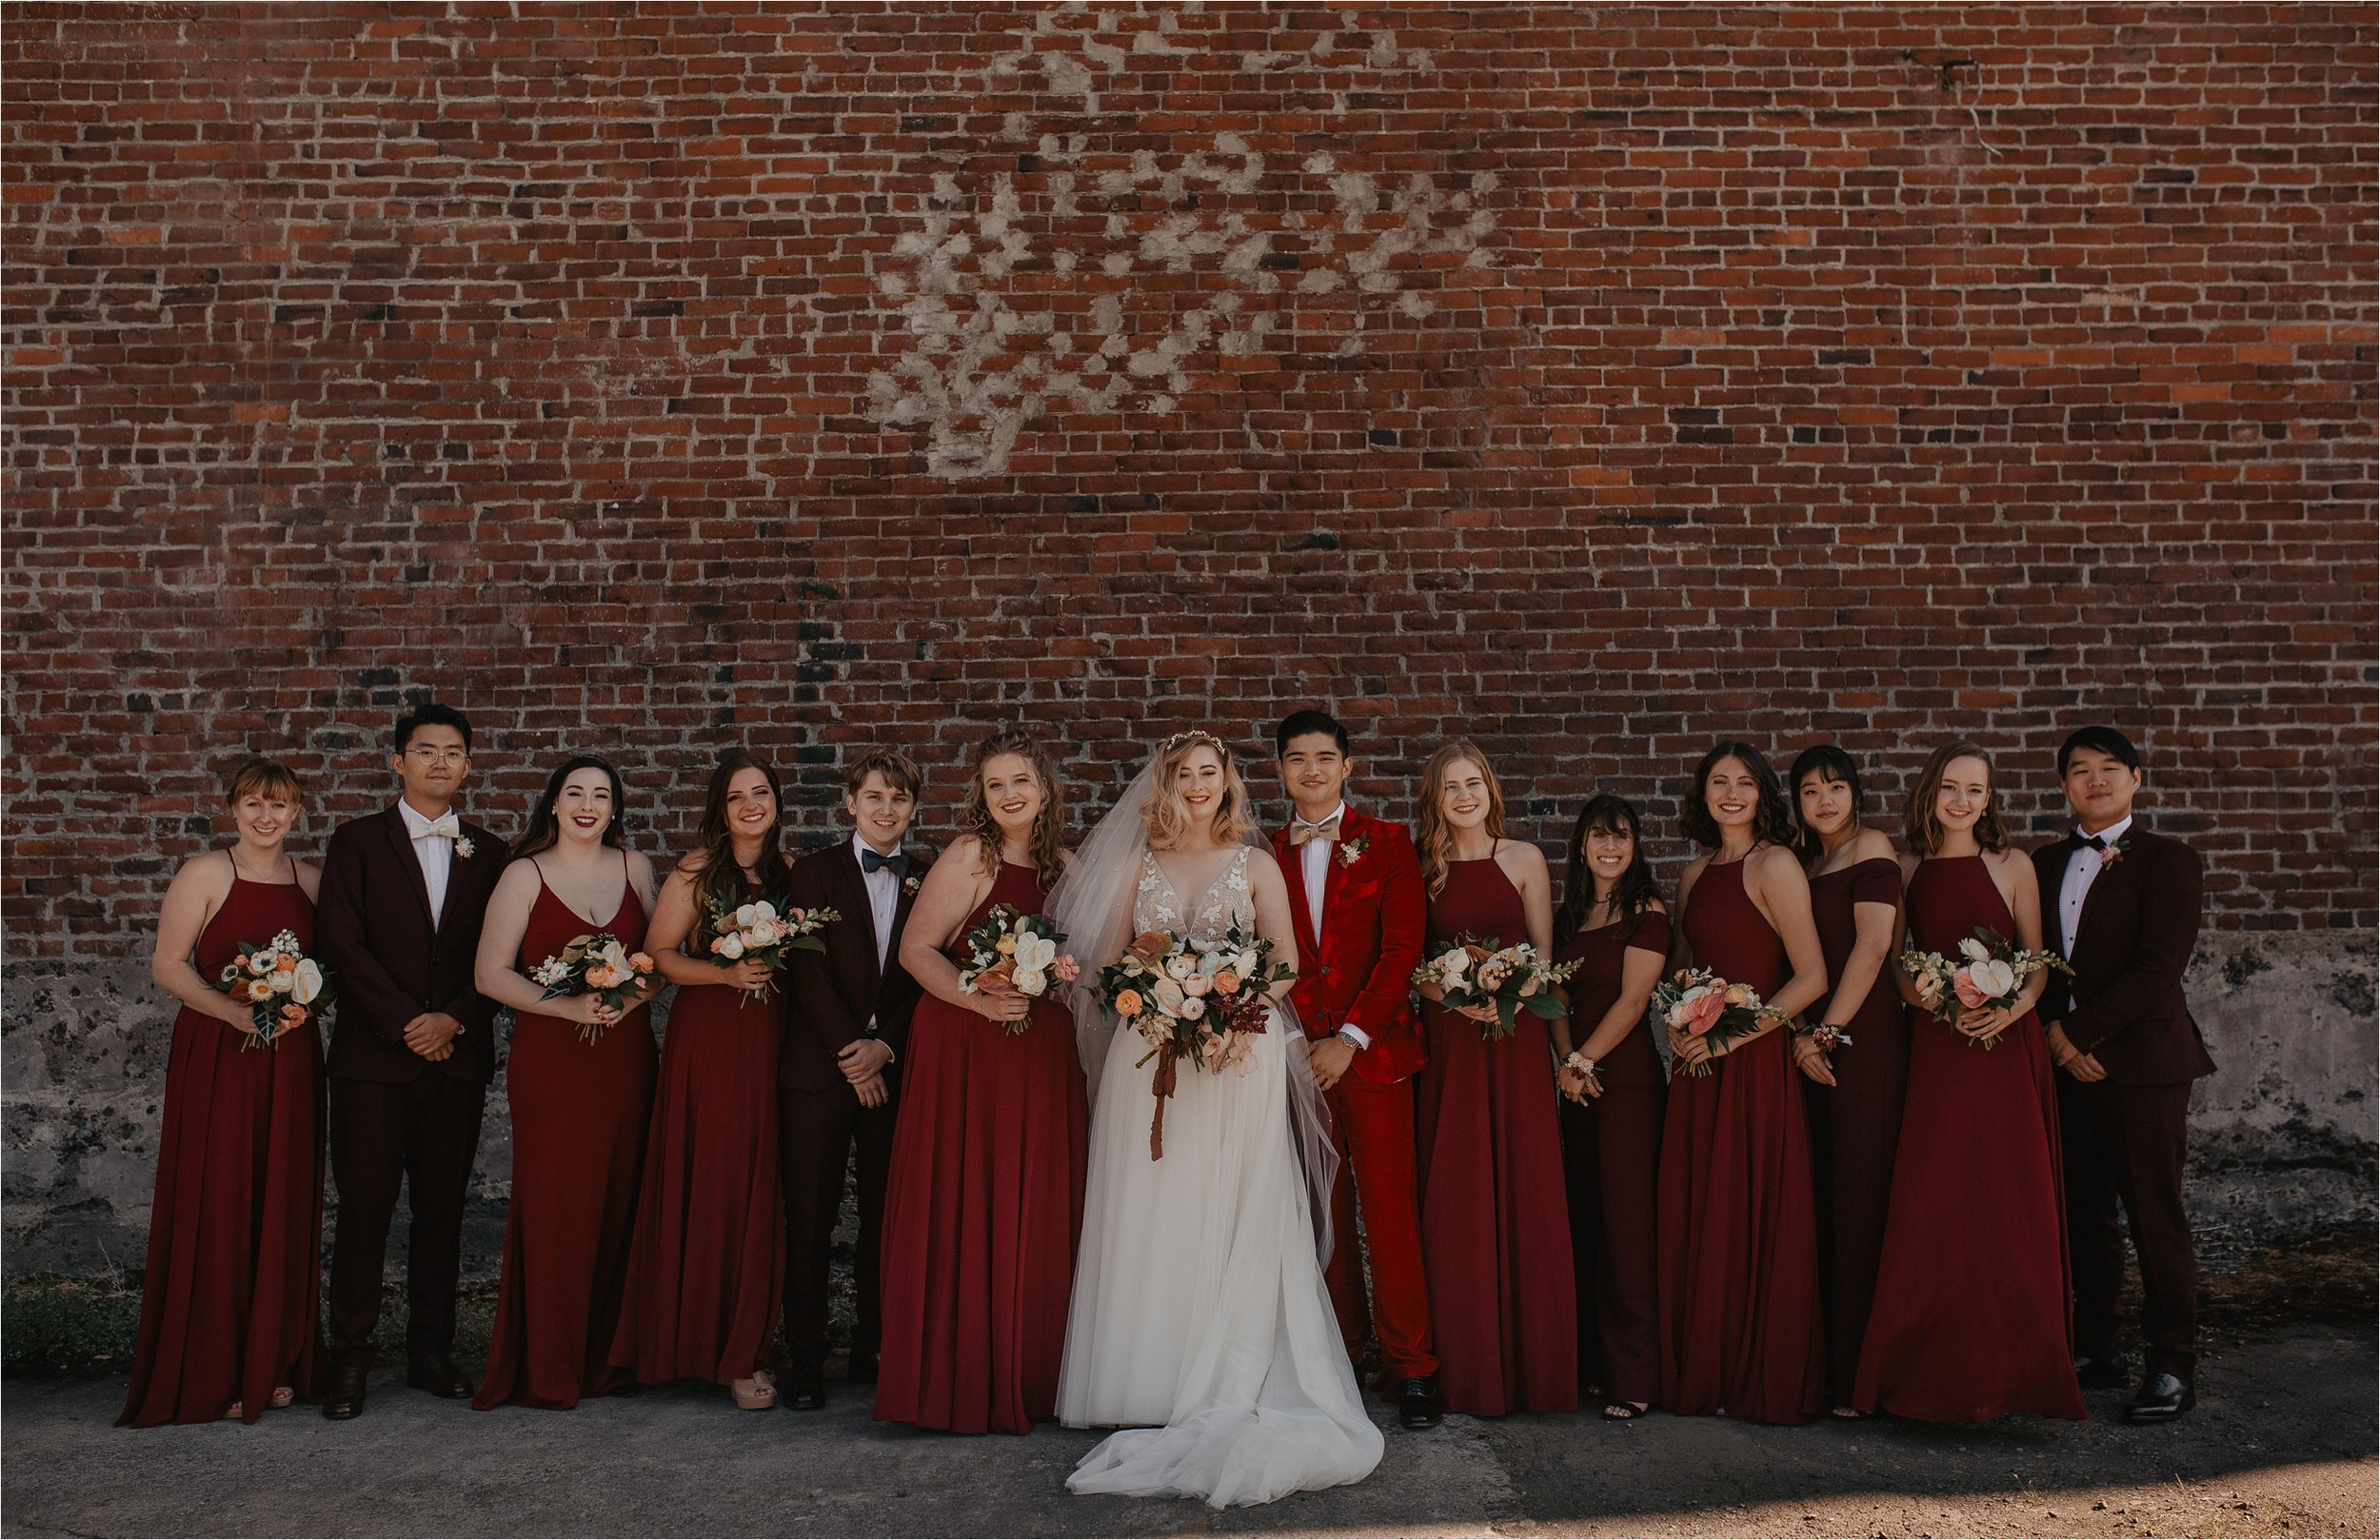 modernized-vintage-wedding-portland-city_0063.jpg